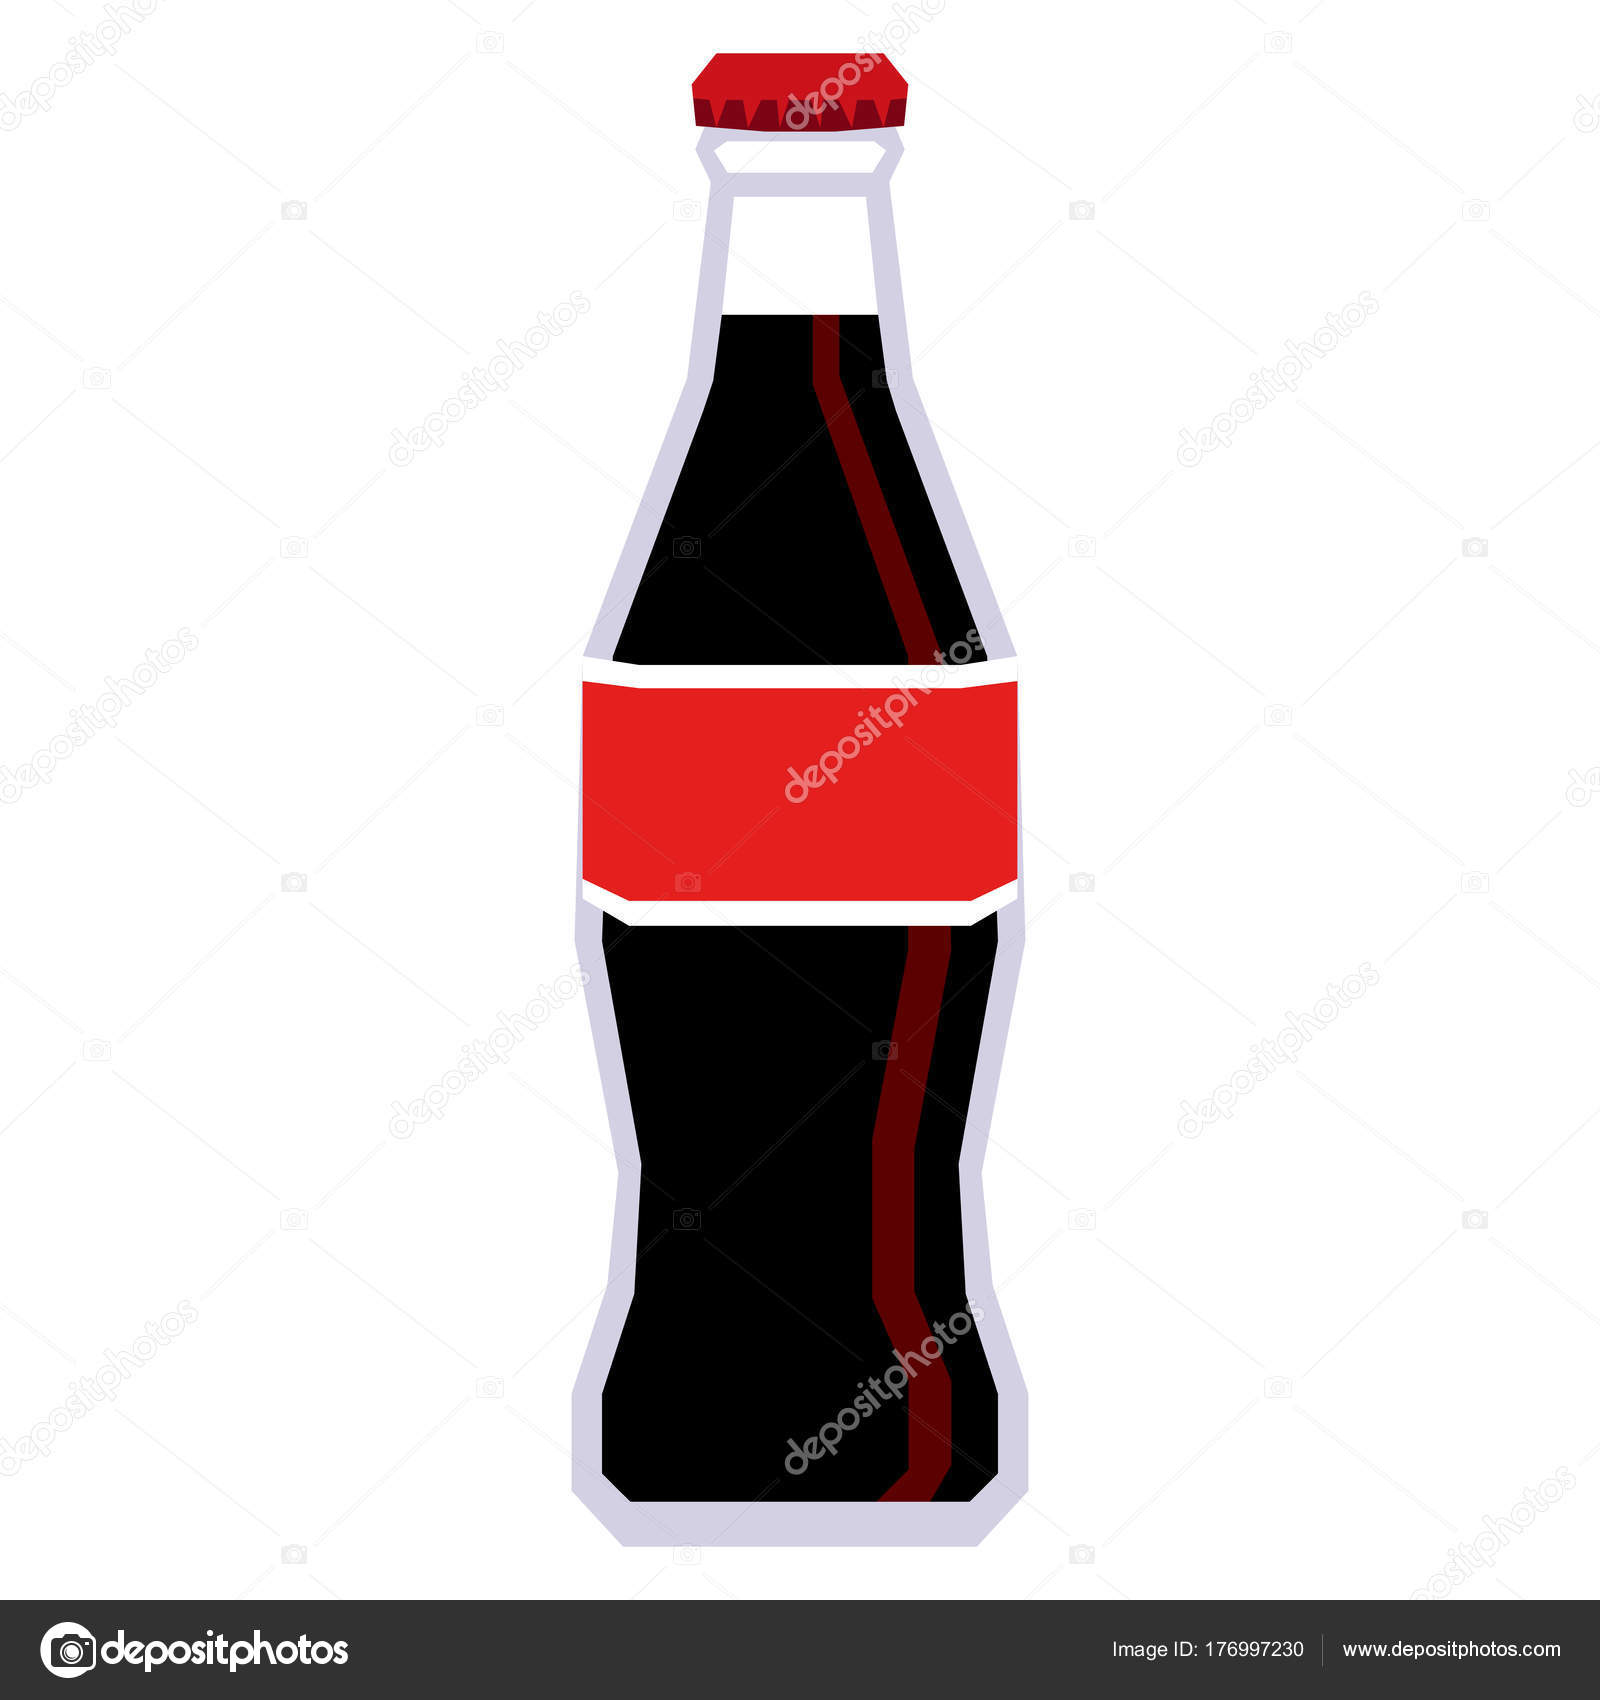 Can Clip Art Pictures additionally Watch also Tescos Ribena Ban A Slap In The Face Or A Step In The Right Direction furthermore Kid With Italy Flag Cartoon Illustration 1612379 likewise 10 Real Life Ex les Of Mind Control. on cartoon coke